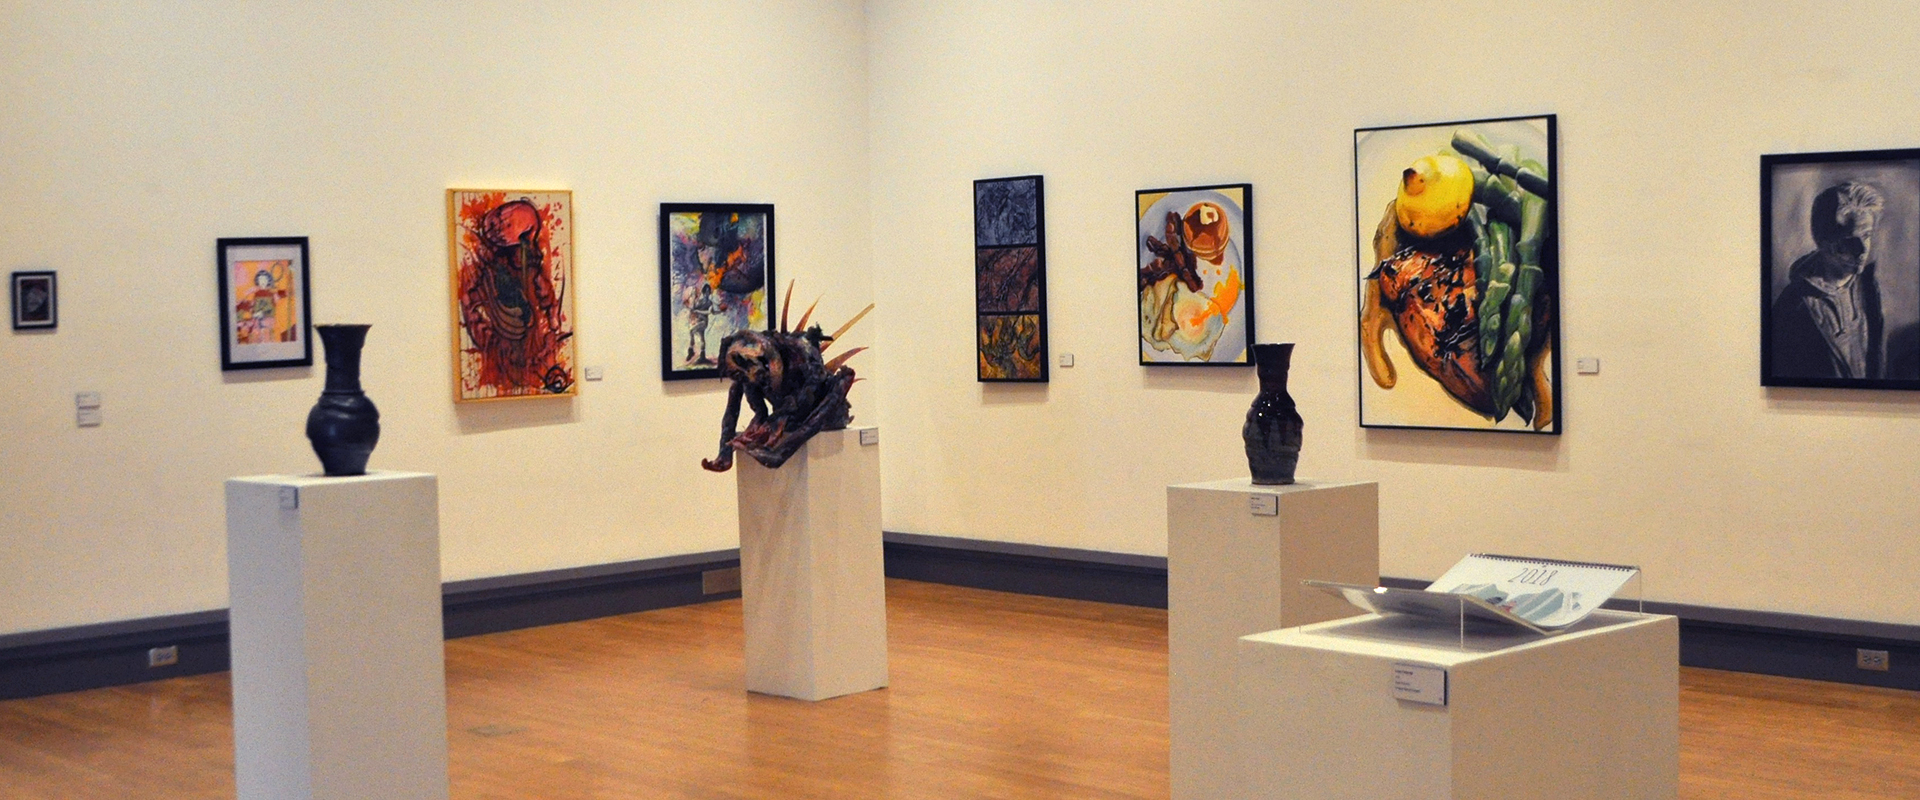 View of McCutchan/Pace gallery, with various art on display: sculpture, 2D